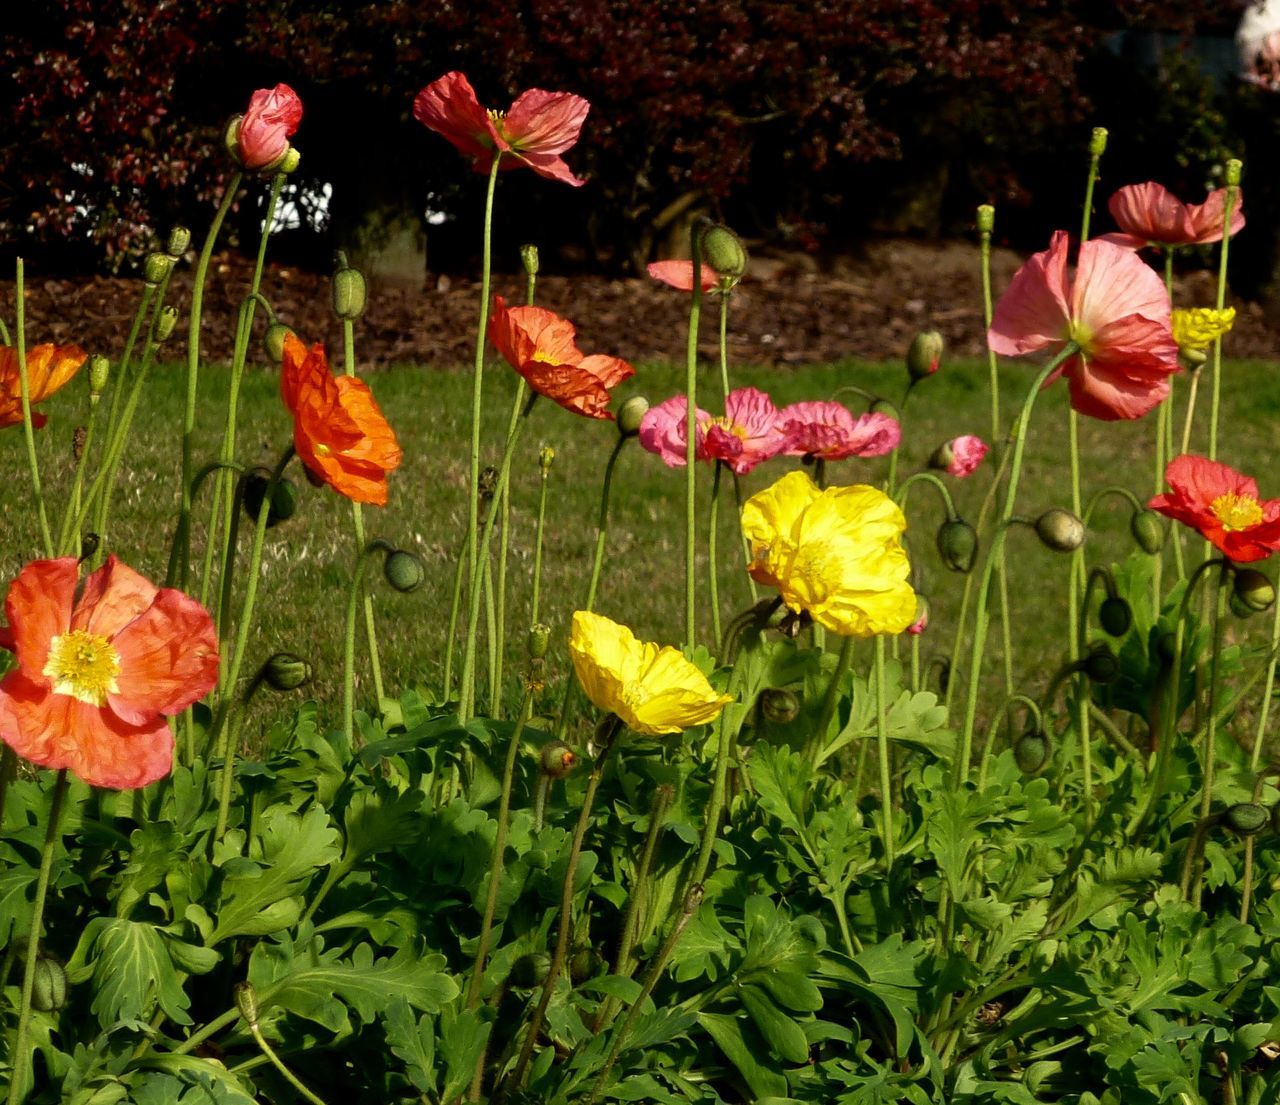 flower, growth, plant, petal, nature, freshness, fragility, no people, beauty in nature, blooming, poppy, outdoors, flower head, day, close-up